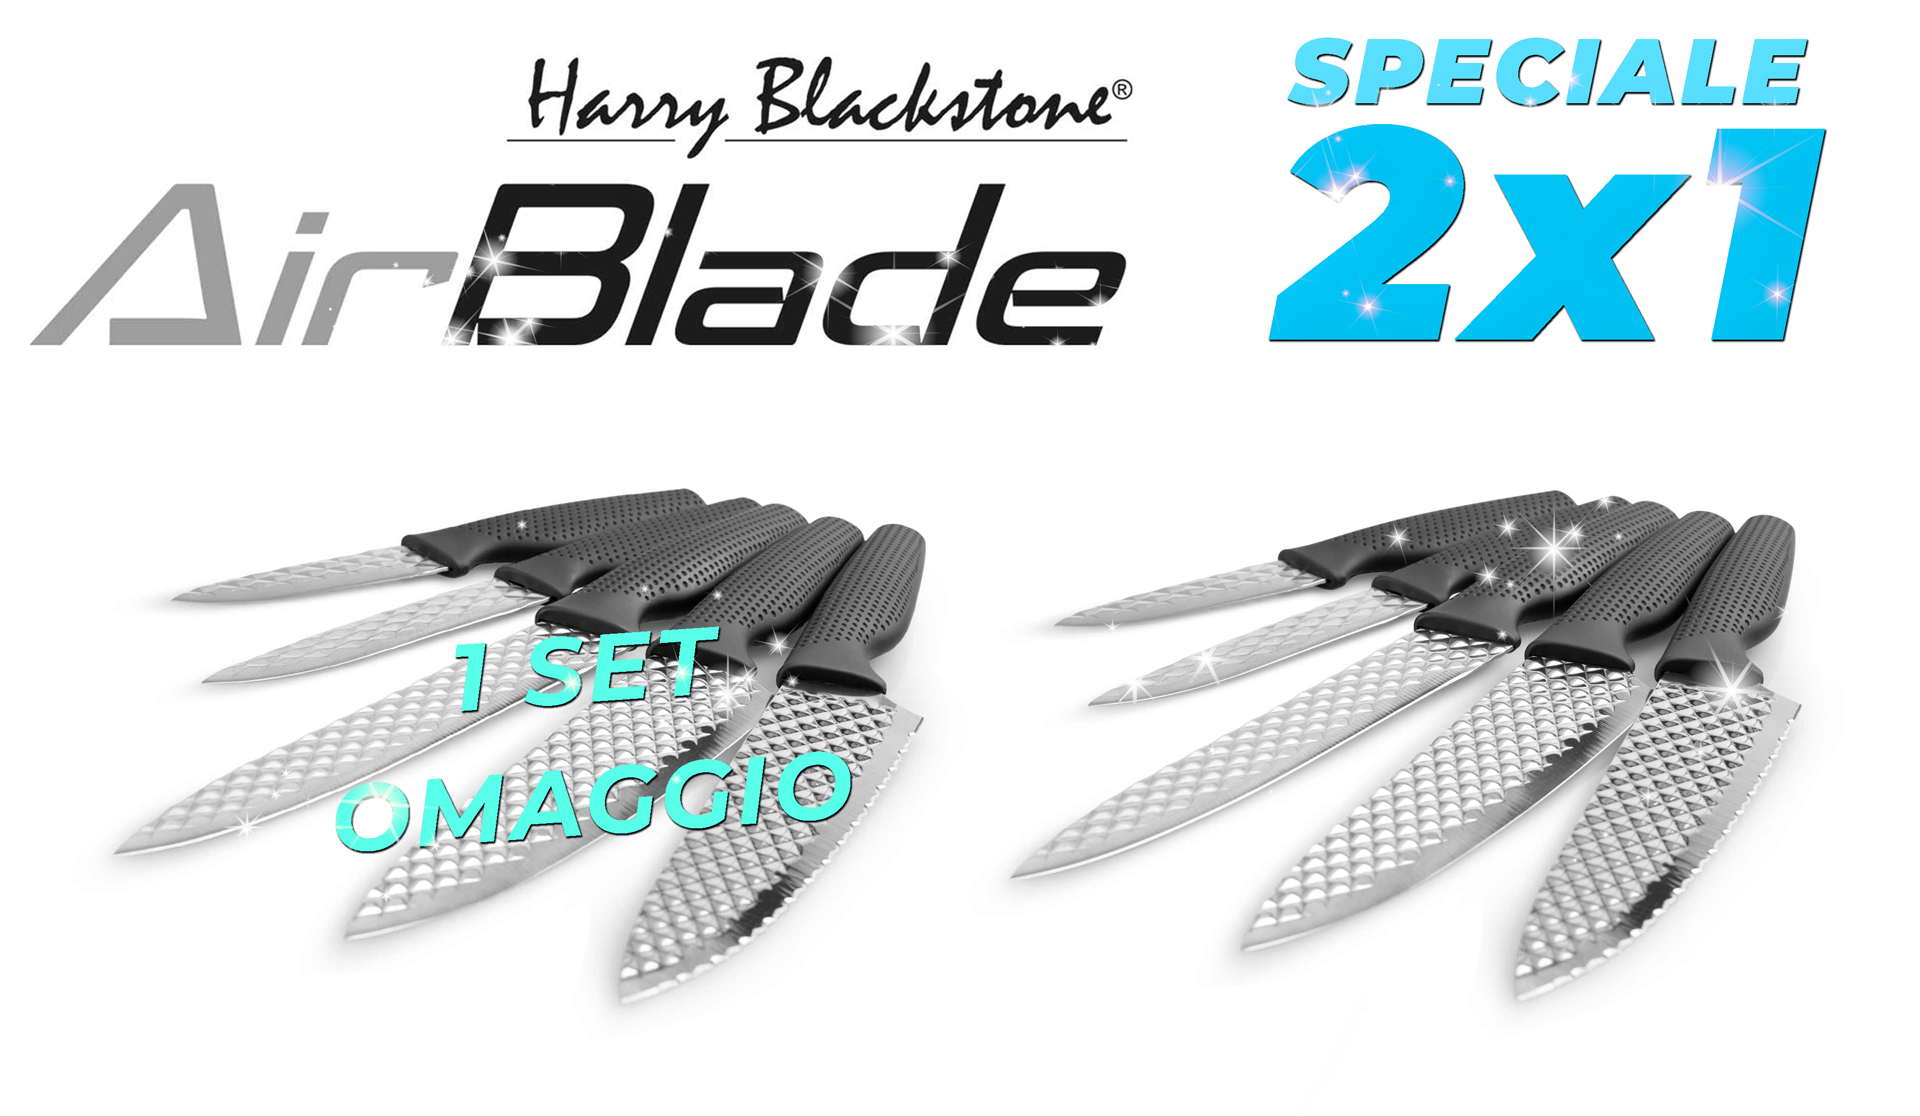 Harry Blackstone Airblade Set coltelli professionali